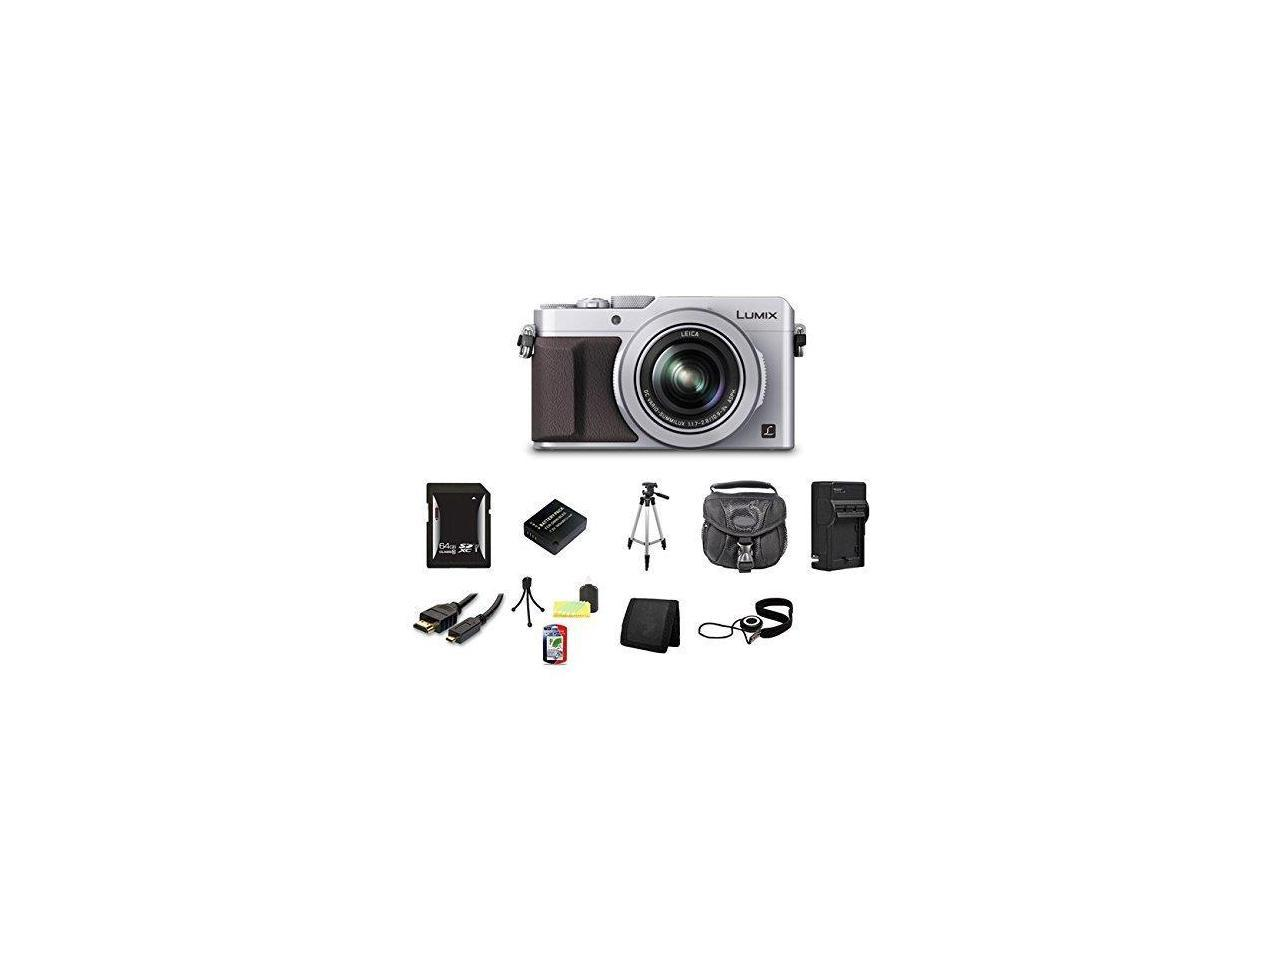 Panasonic LUMIX DMC-LX100 Digital Camera (Silver) Bundle 7